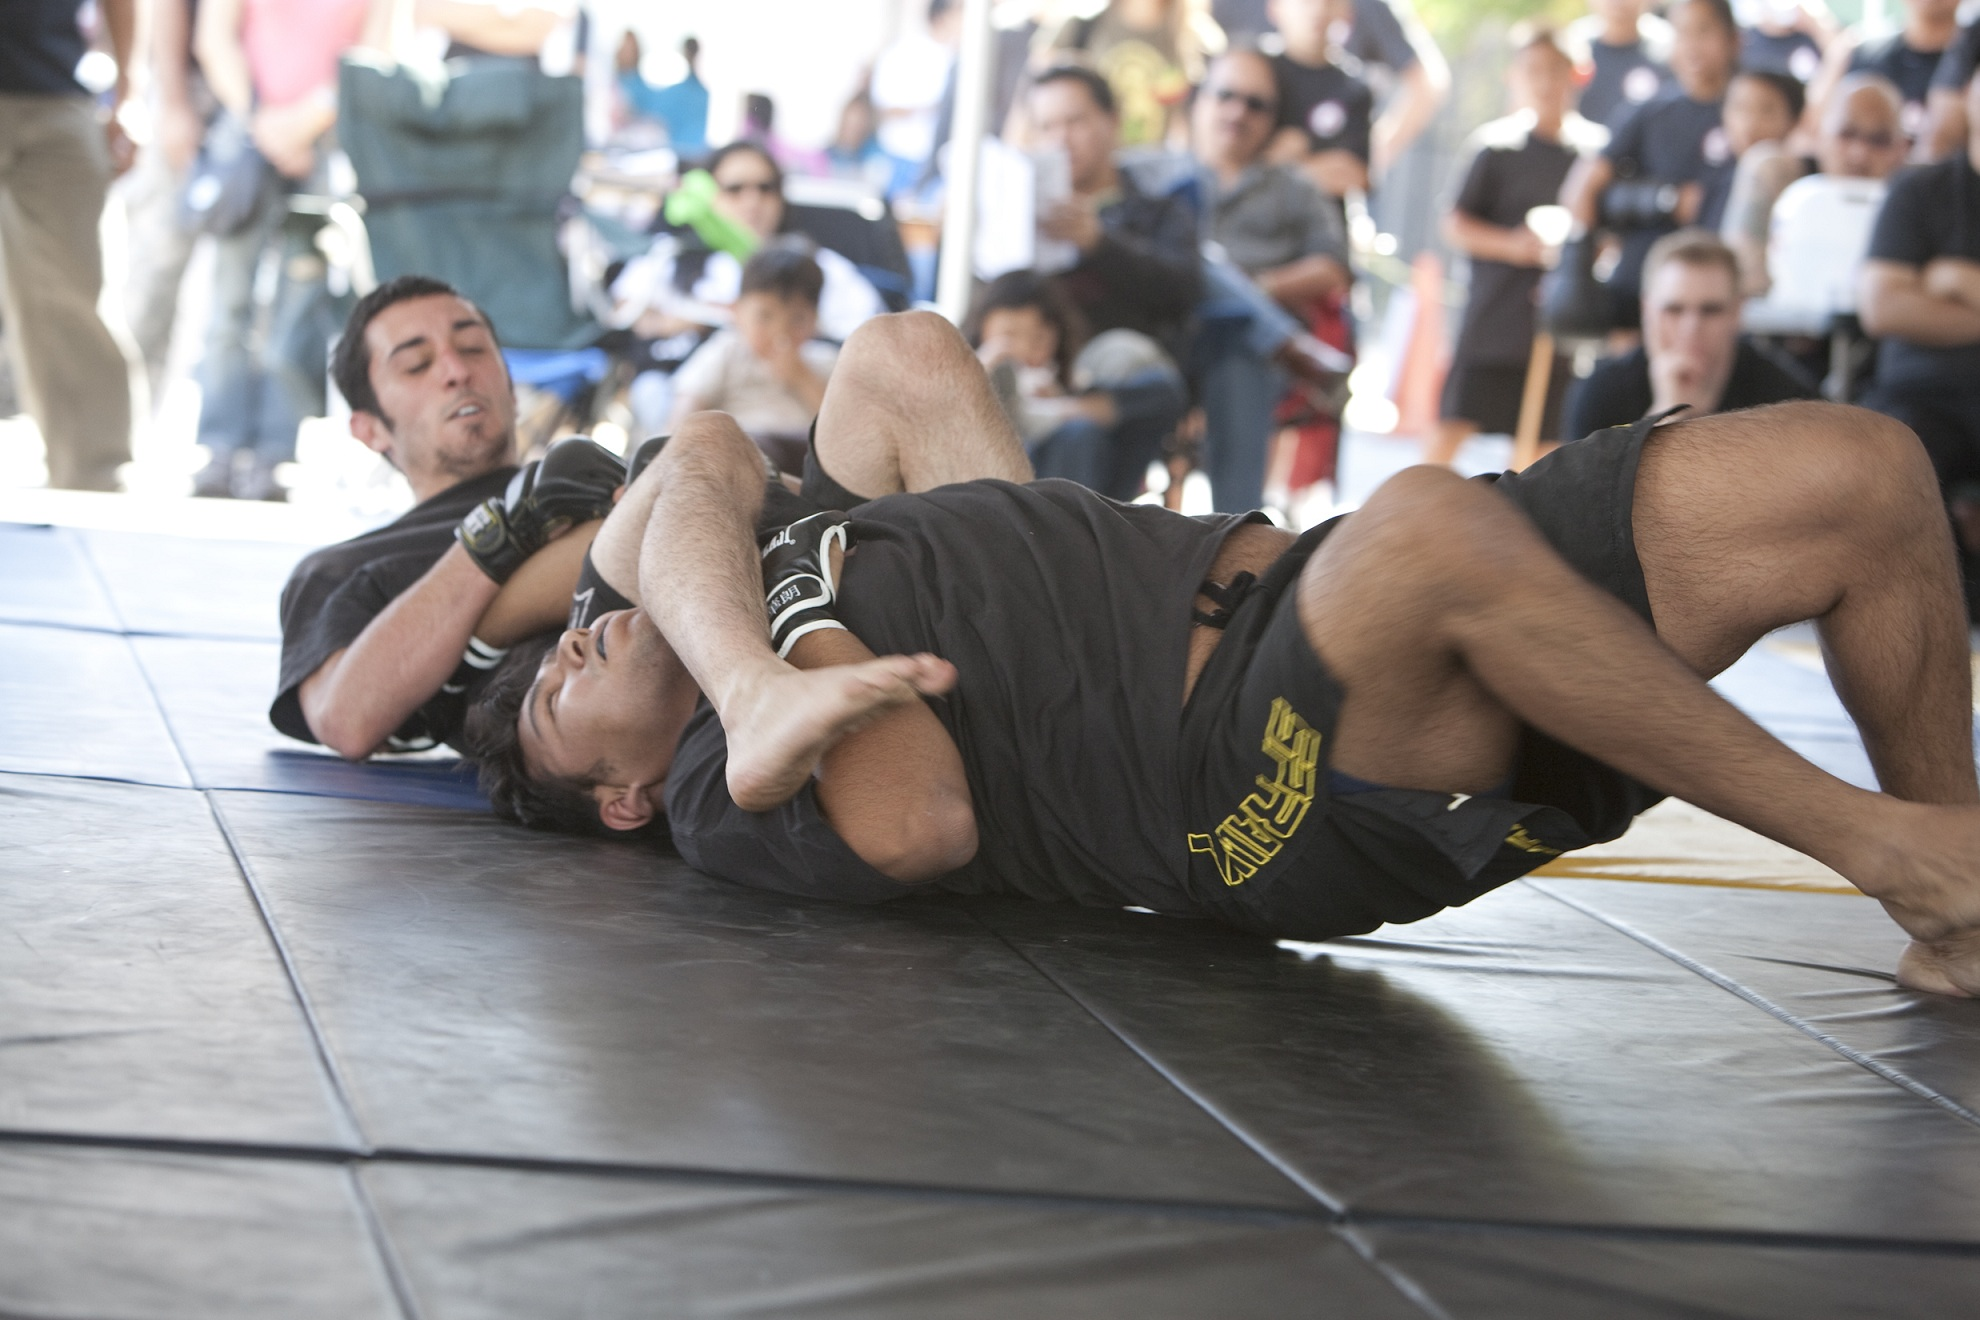 The Advantages of Brazilian jiu jitsu